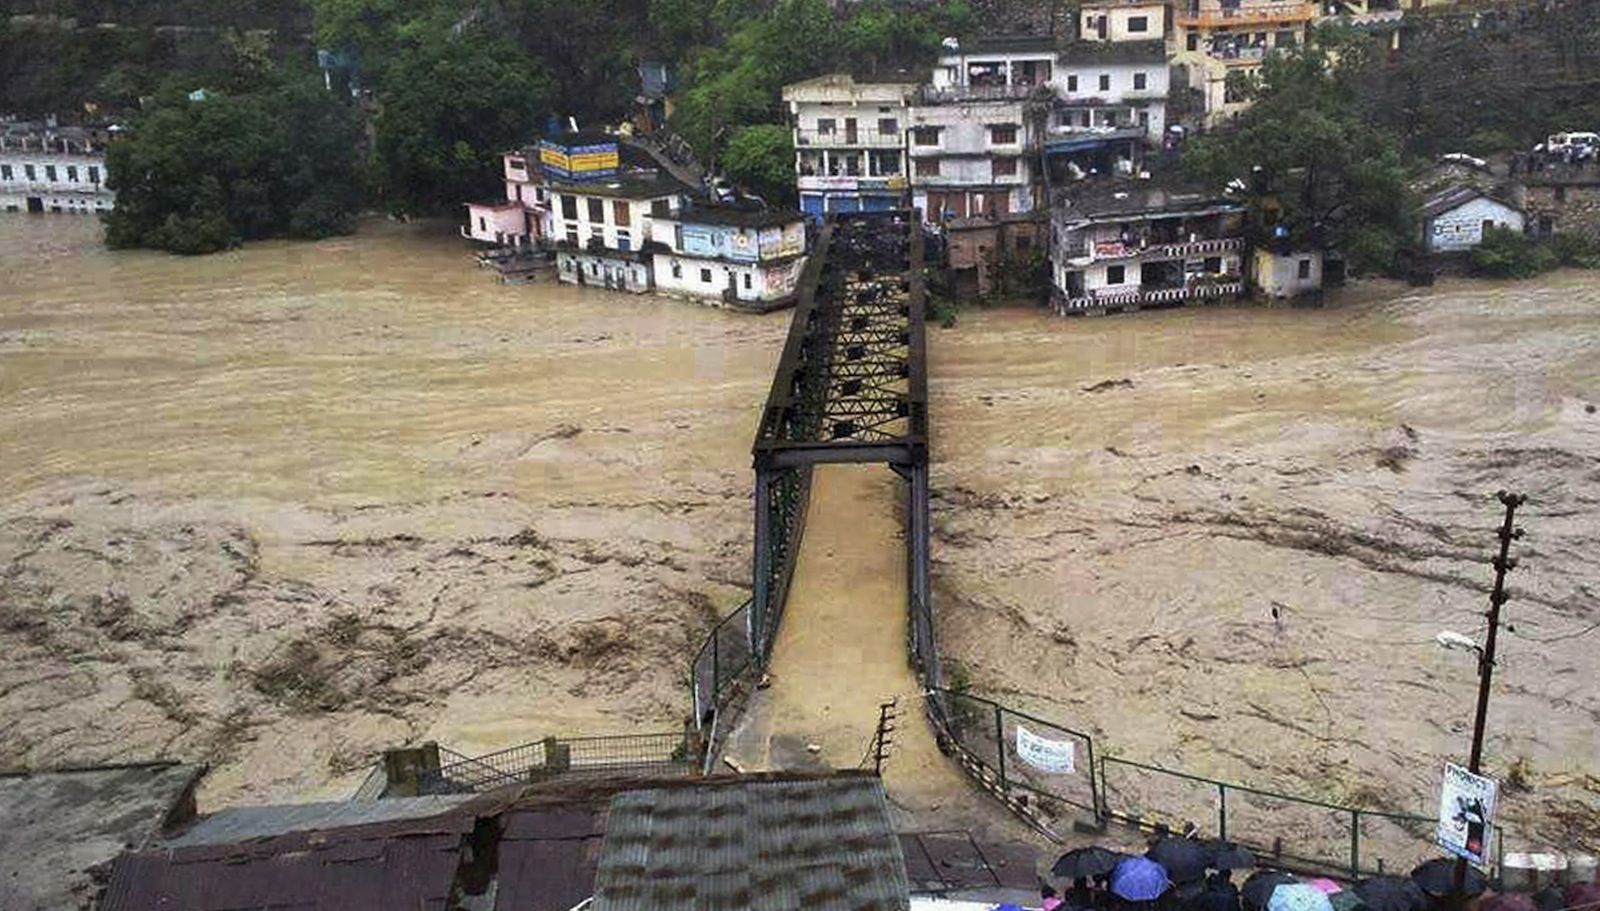 India's water minister says atheists cause floods (crazier ... Uttarakhand Temple Disaster